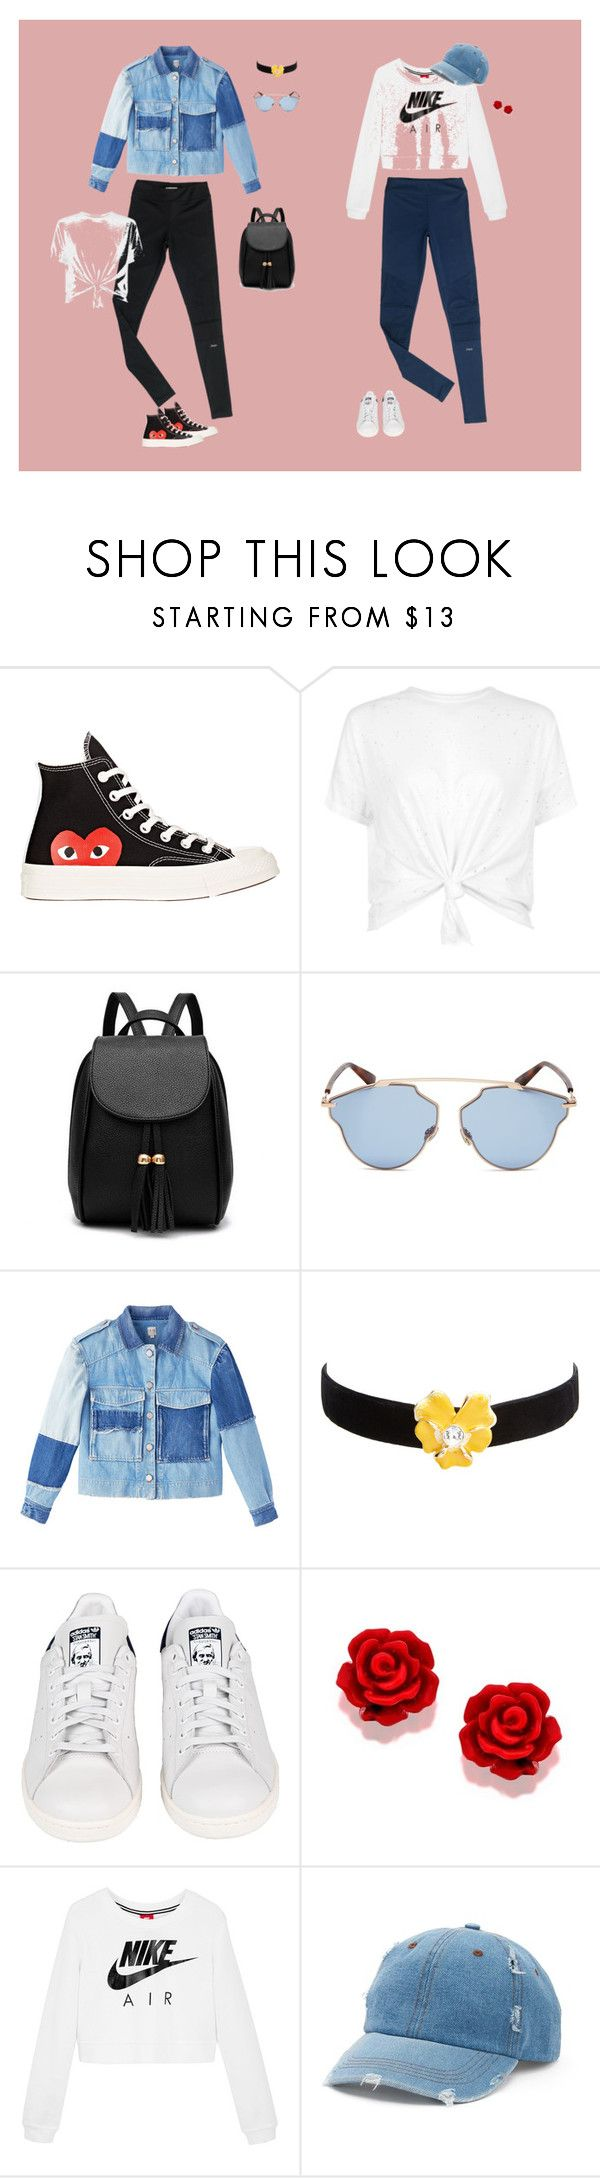 """""""One Legging: Two Styles"""" by wearnuyu on Polyvore featuring nuyu, Comme des Garçons, Christian Dior, Kenneth Jay Lane, adidas, NIKE and Mudd"""